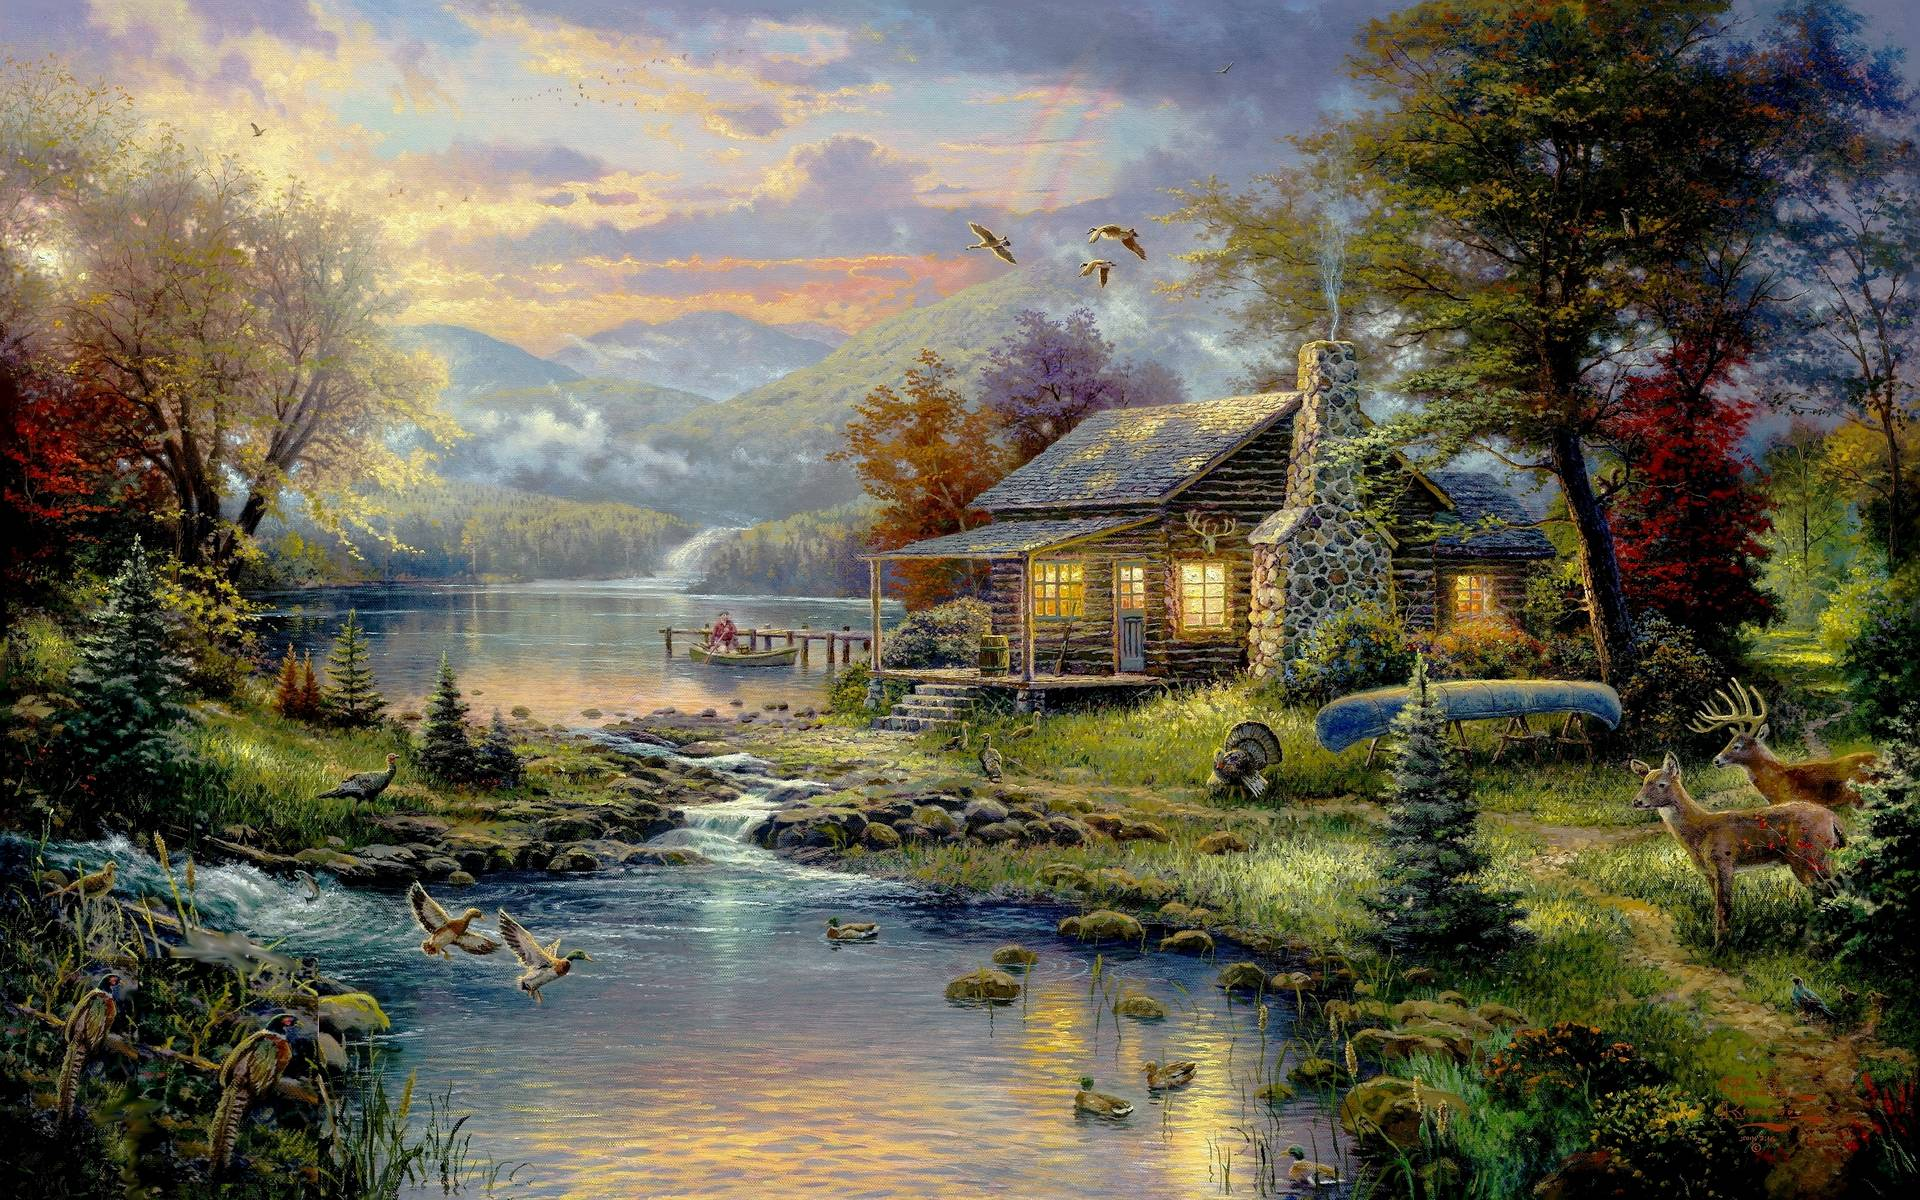 Thomas Kinkade Wallpapers 1920x1200